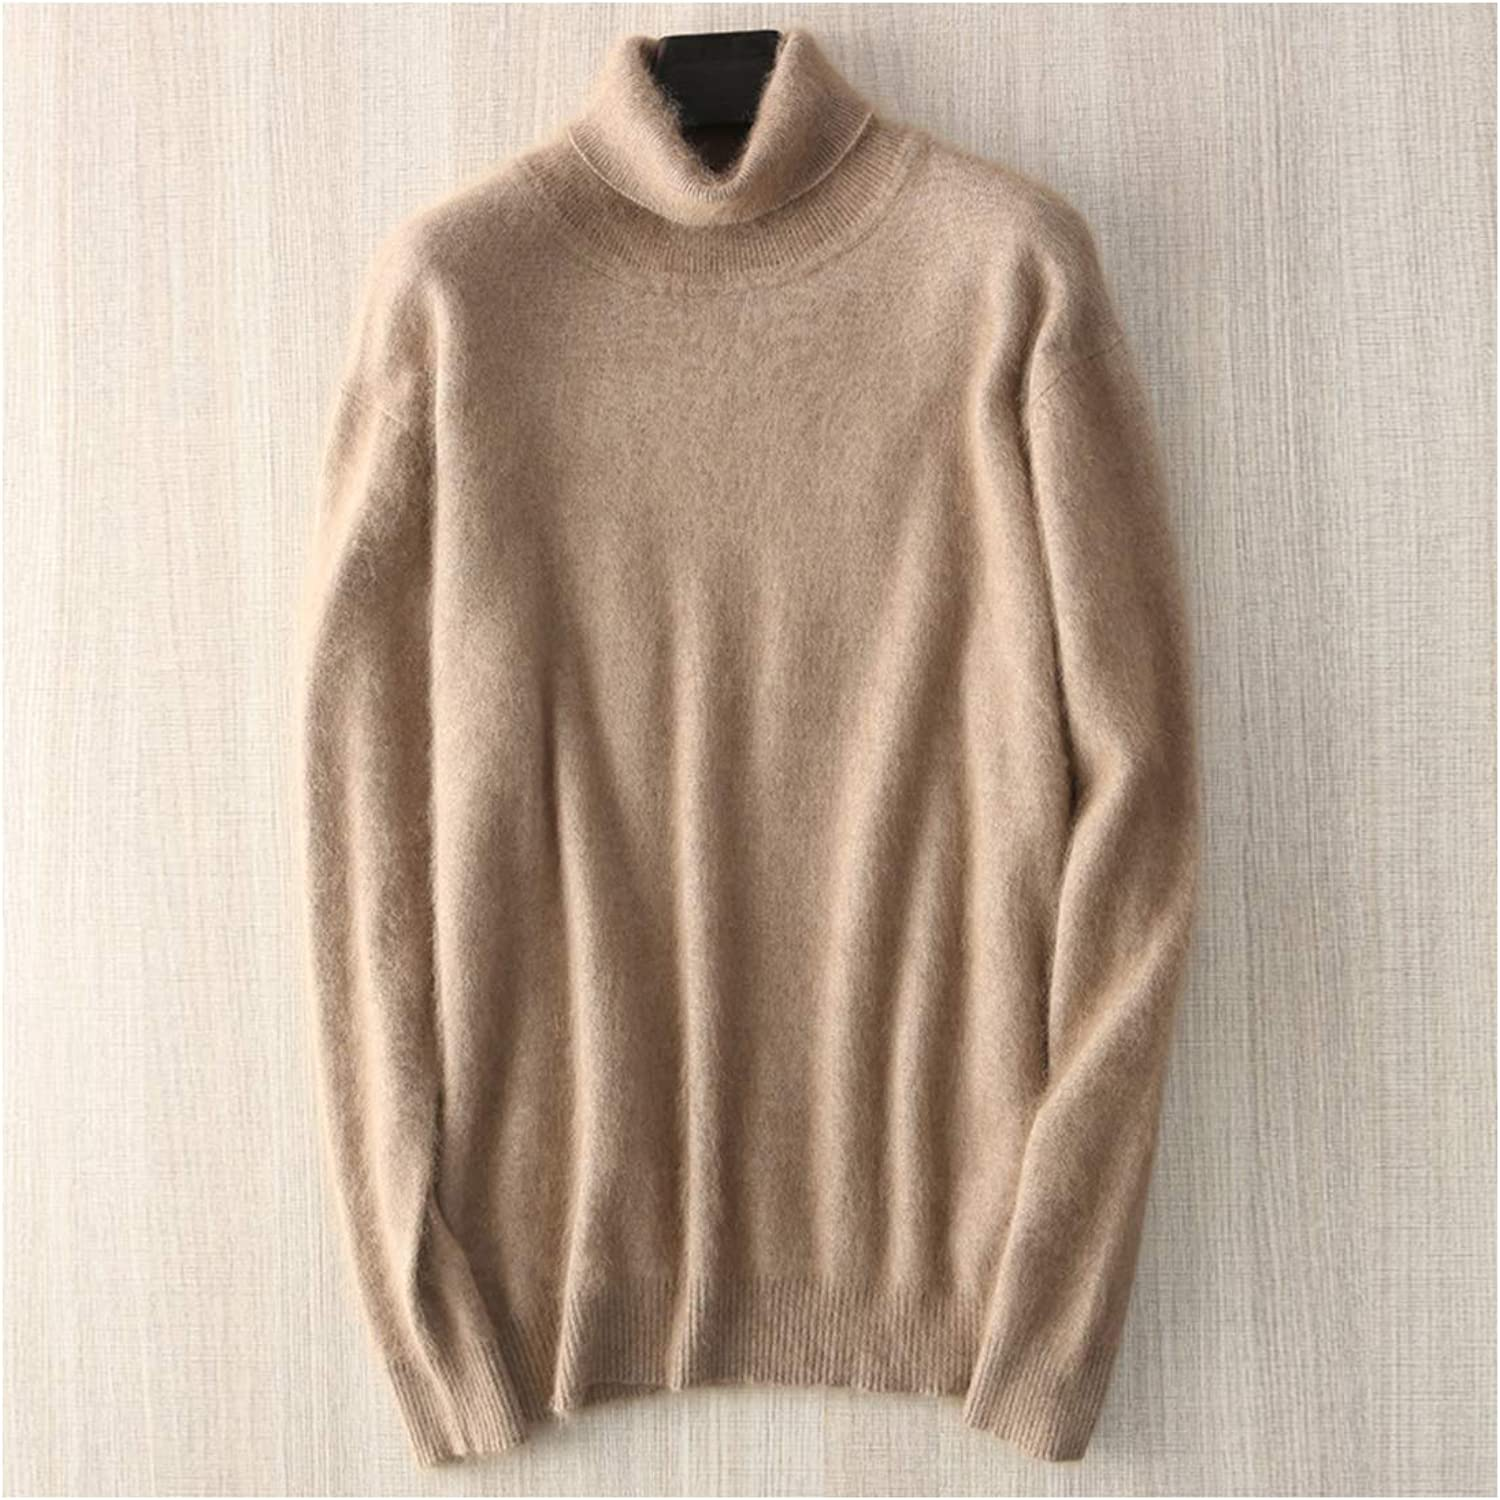 Lugeec Man Jumpers Mink Cashmere Knitted Sweaters Sale Soft